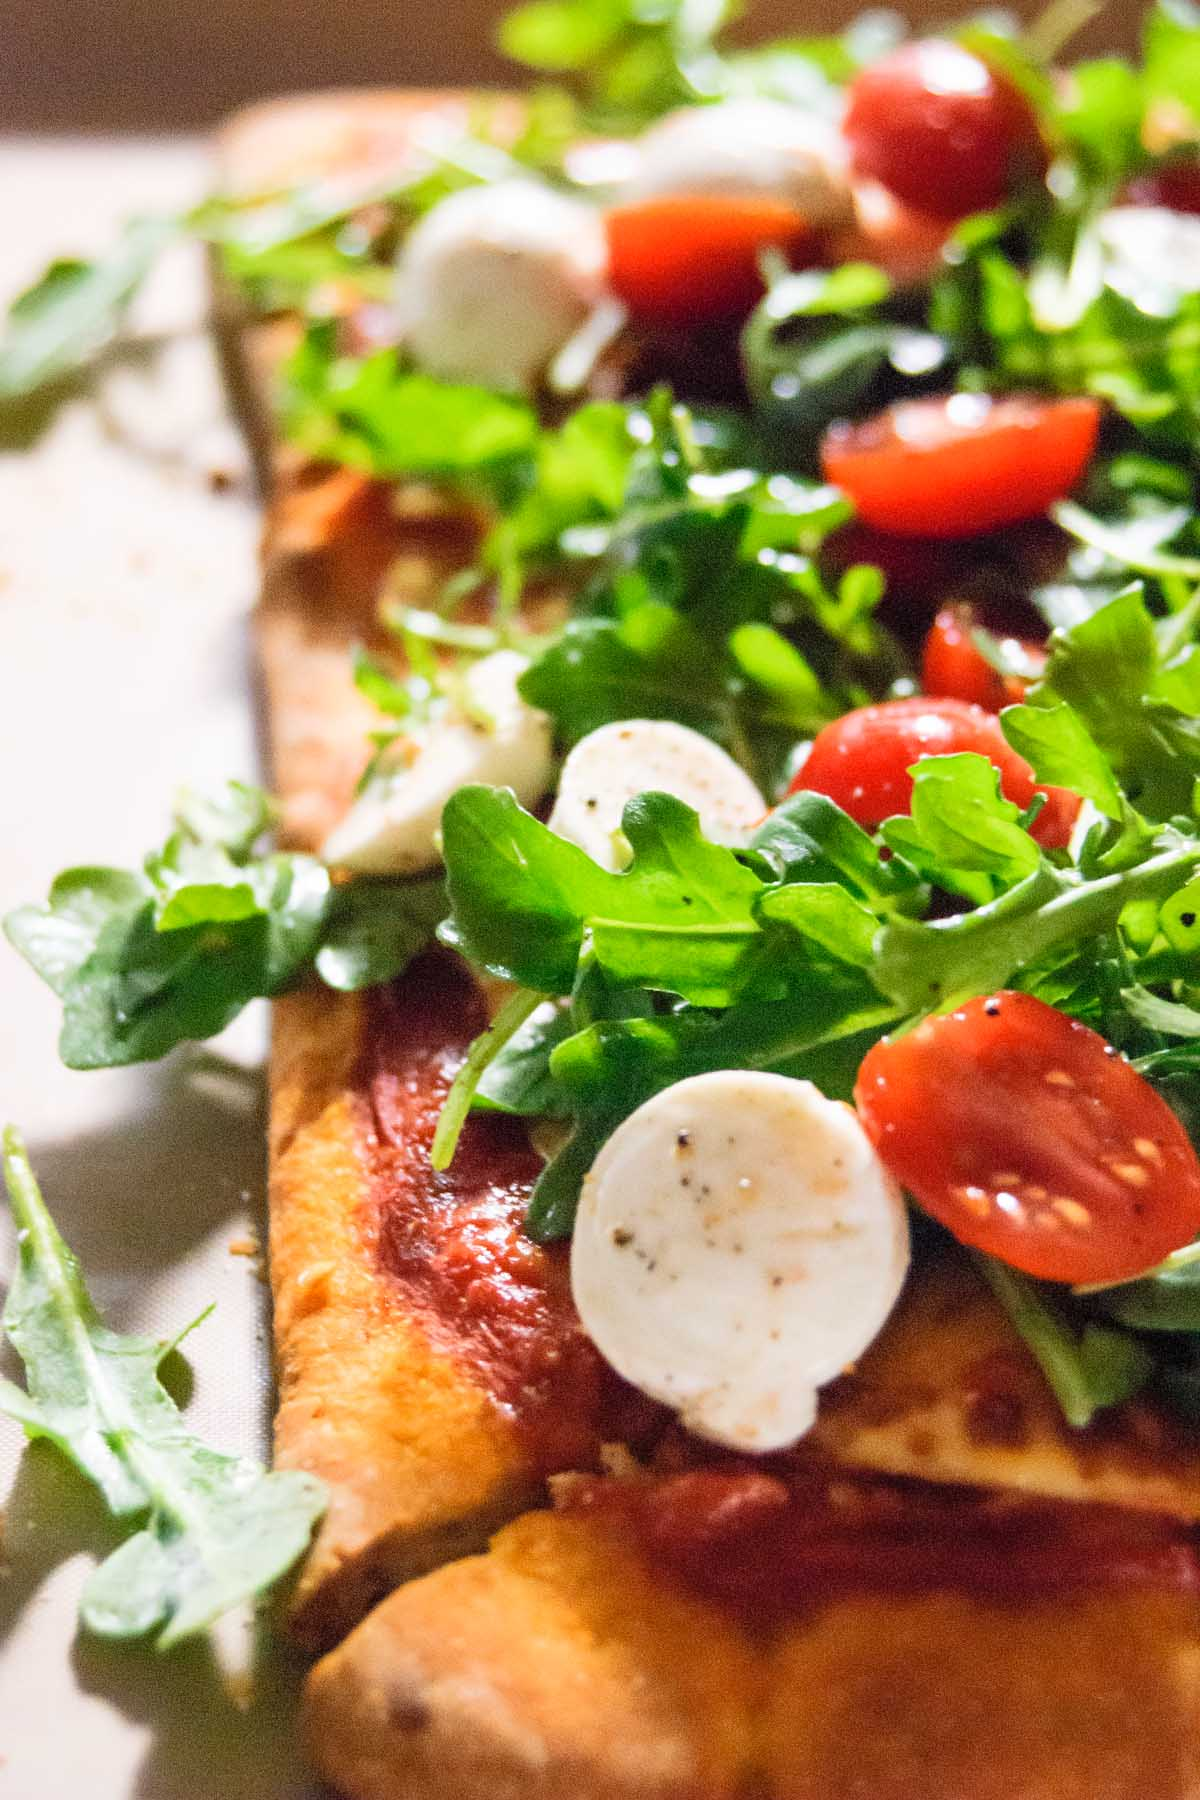 This Caprese Arugula Flatbread Pizza recipe is a date night in and a weeknight dinner miracle worker! It's Netflix binge-worthy, romantic, quick to make, great with a glass of wine, and has a good dose of greens!!! - thebeaderchef.com #pizza | #datenighin | #quick | #easy | #weeknightmeal | #flatbread | #flatbreadpizza | #boccocnini | #caprese | #capresesalad